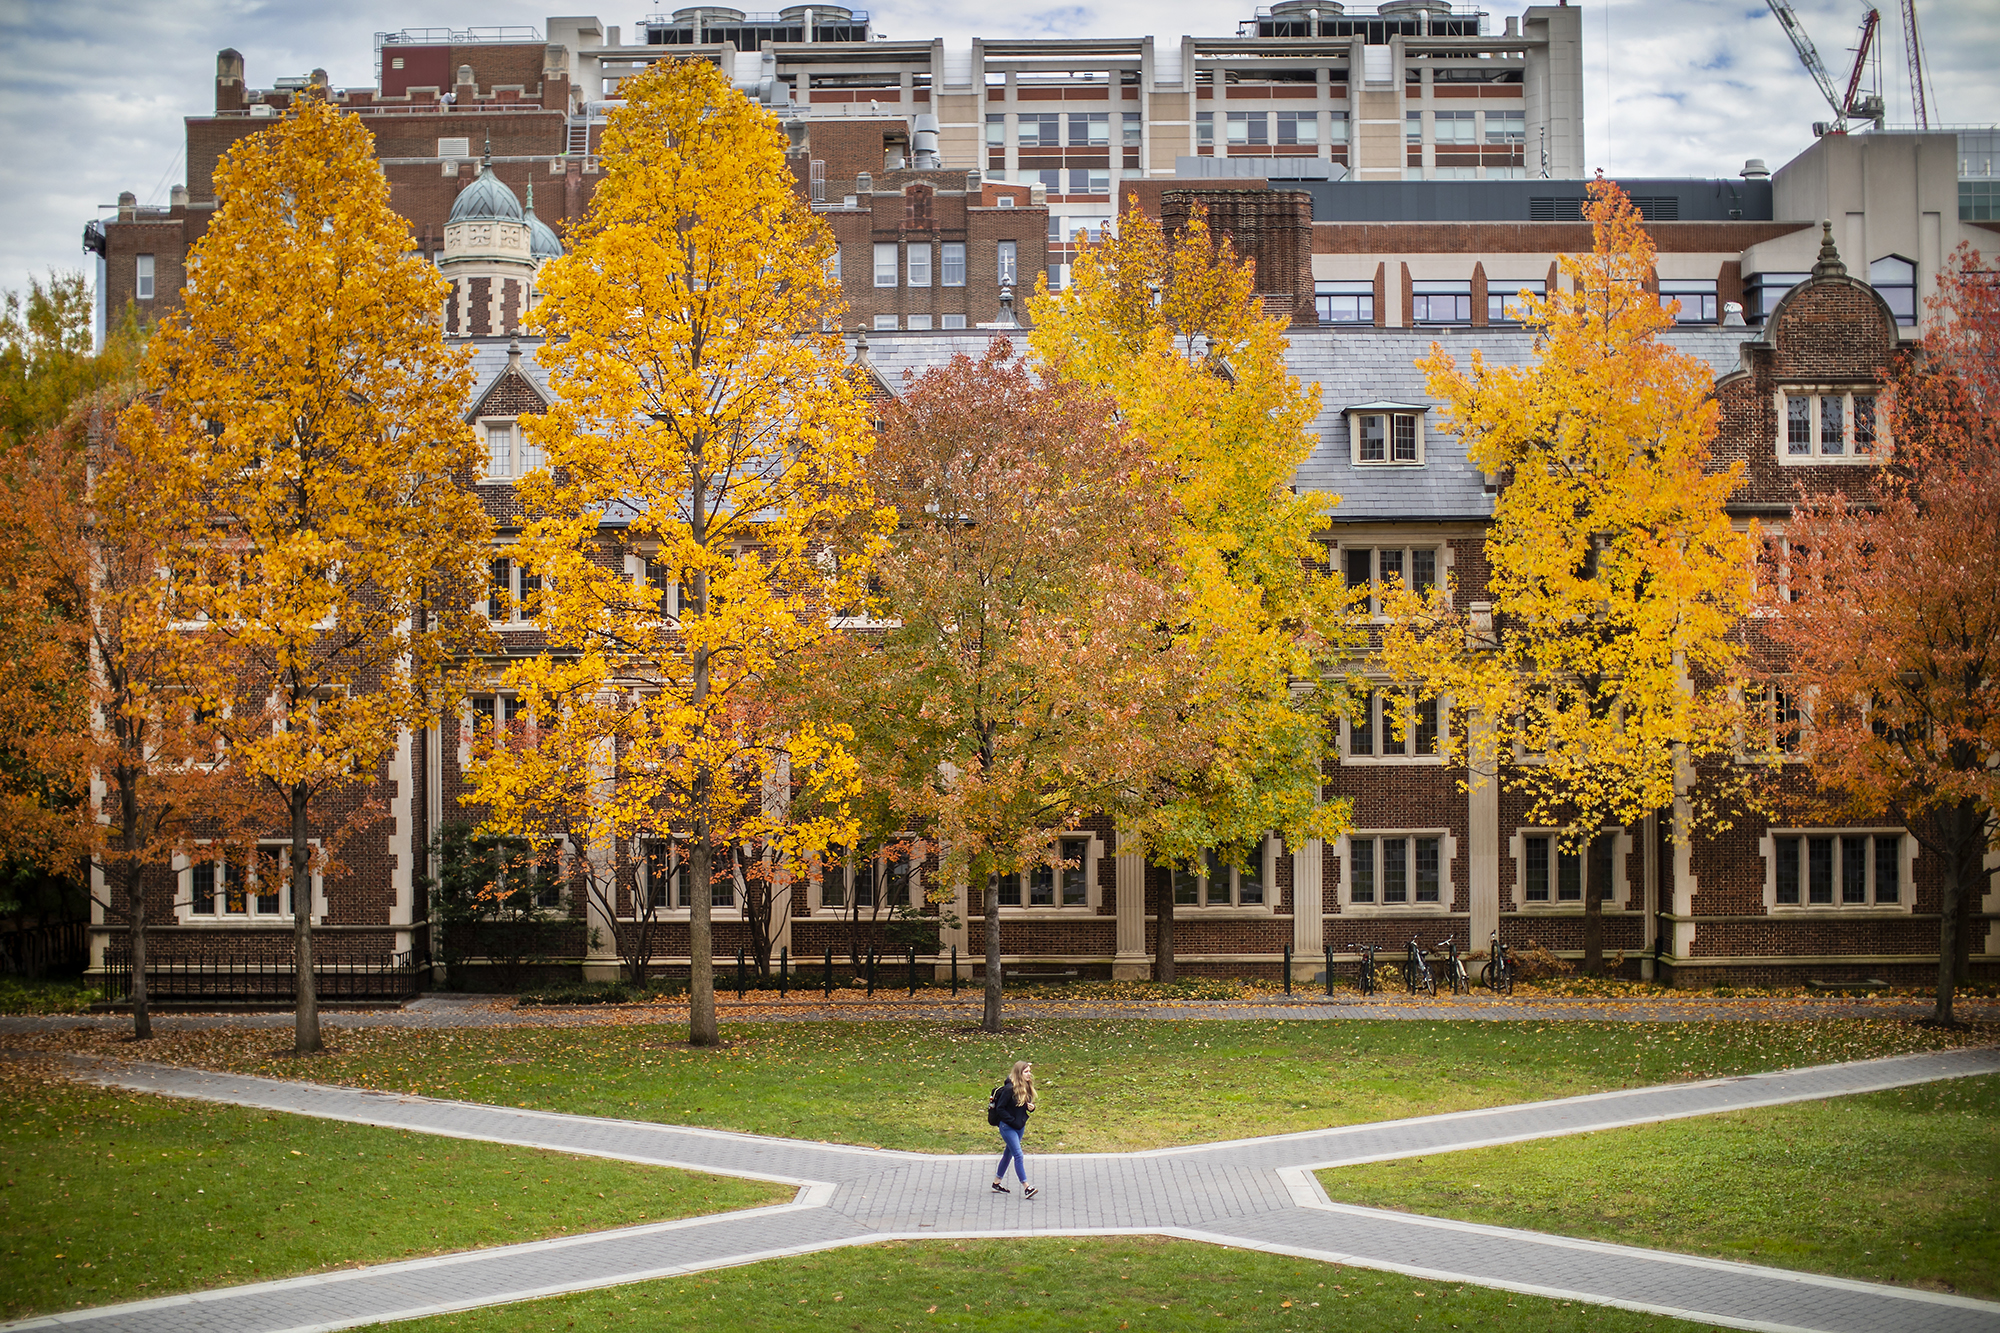 The center of the Quad in fall. A lone figure stands at the center of a four wau crossroads.